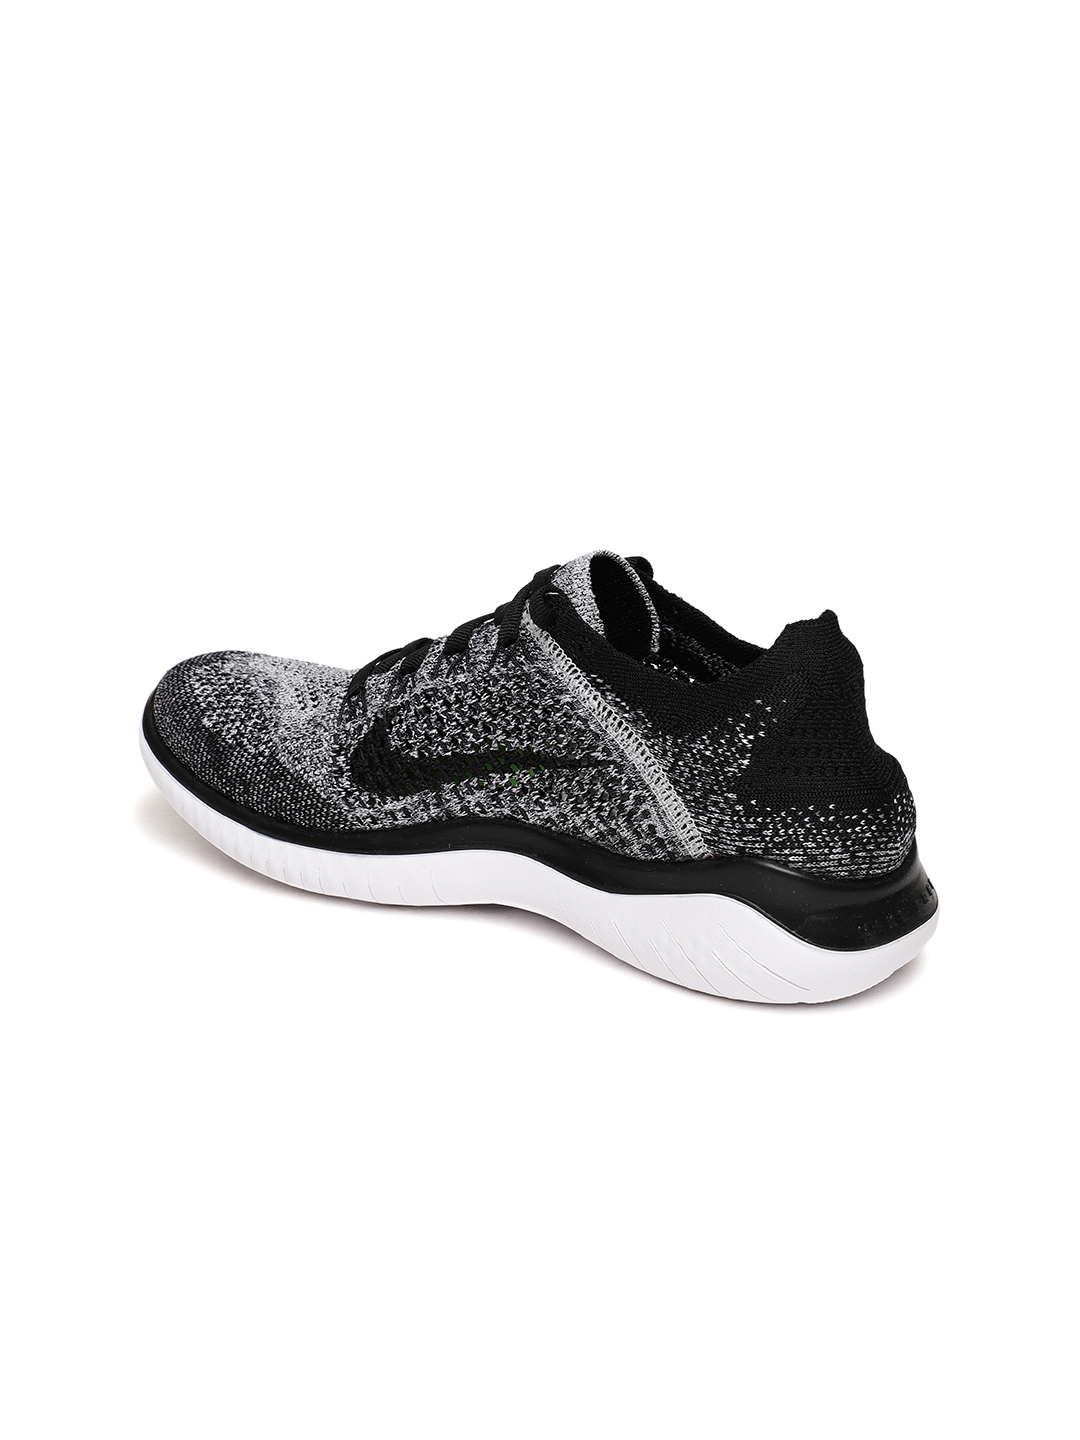 4506b374e6e42 Buy Nike Women Black   White Free RN Flyknit 2018 Running Shoes ...